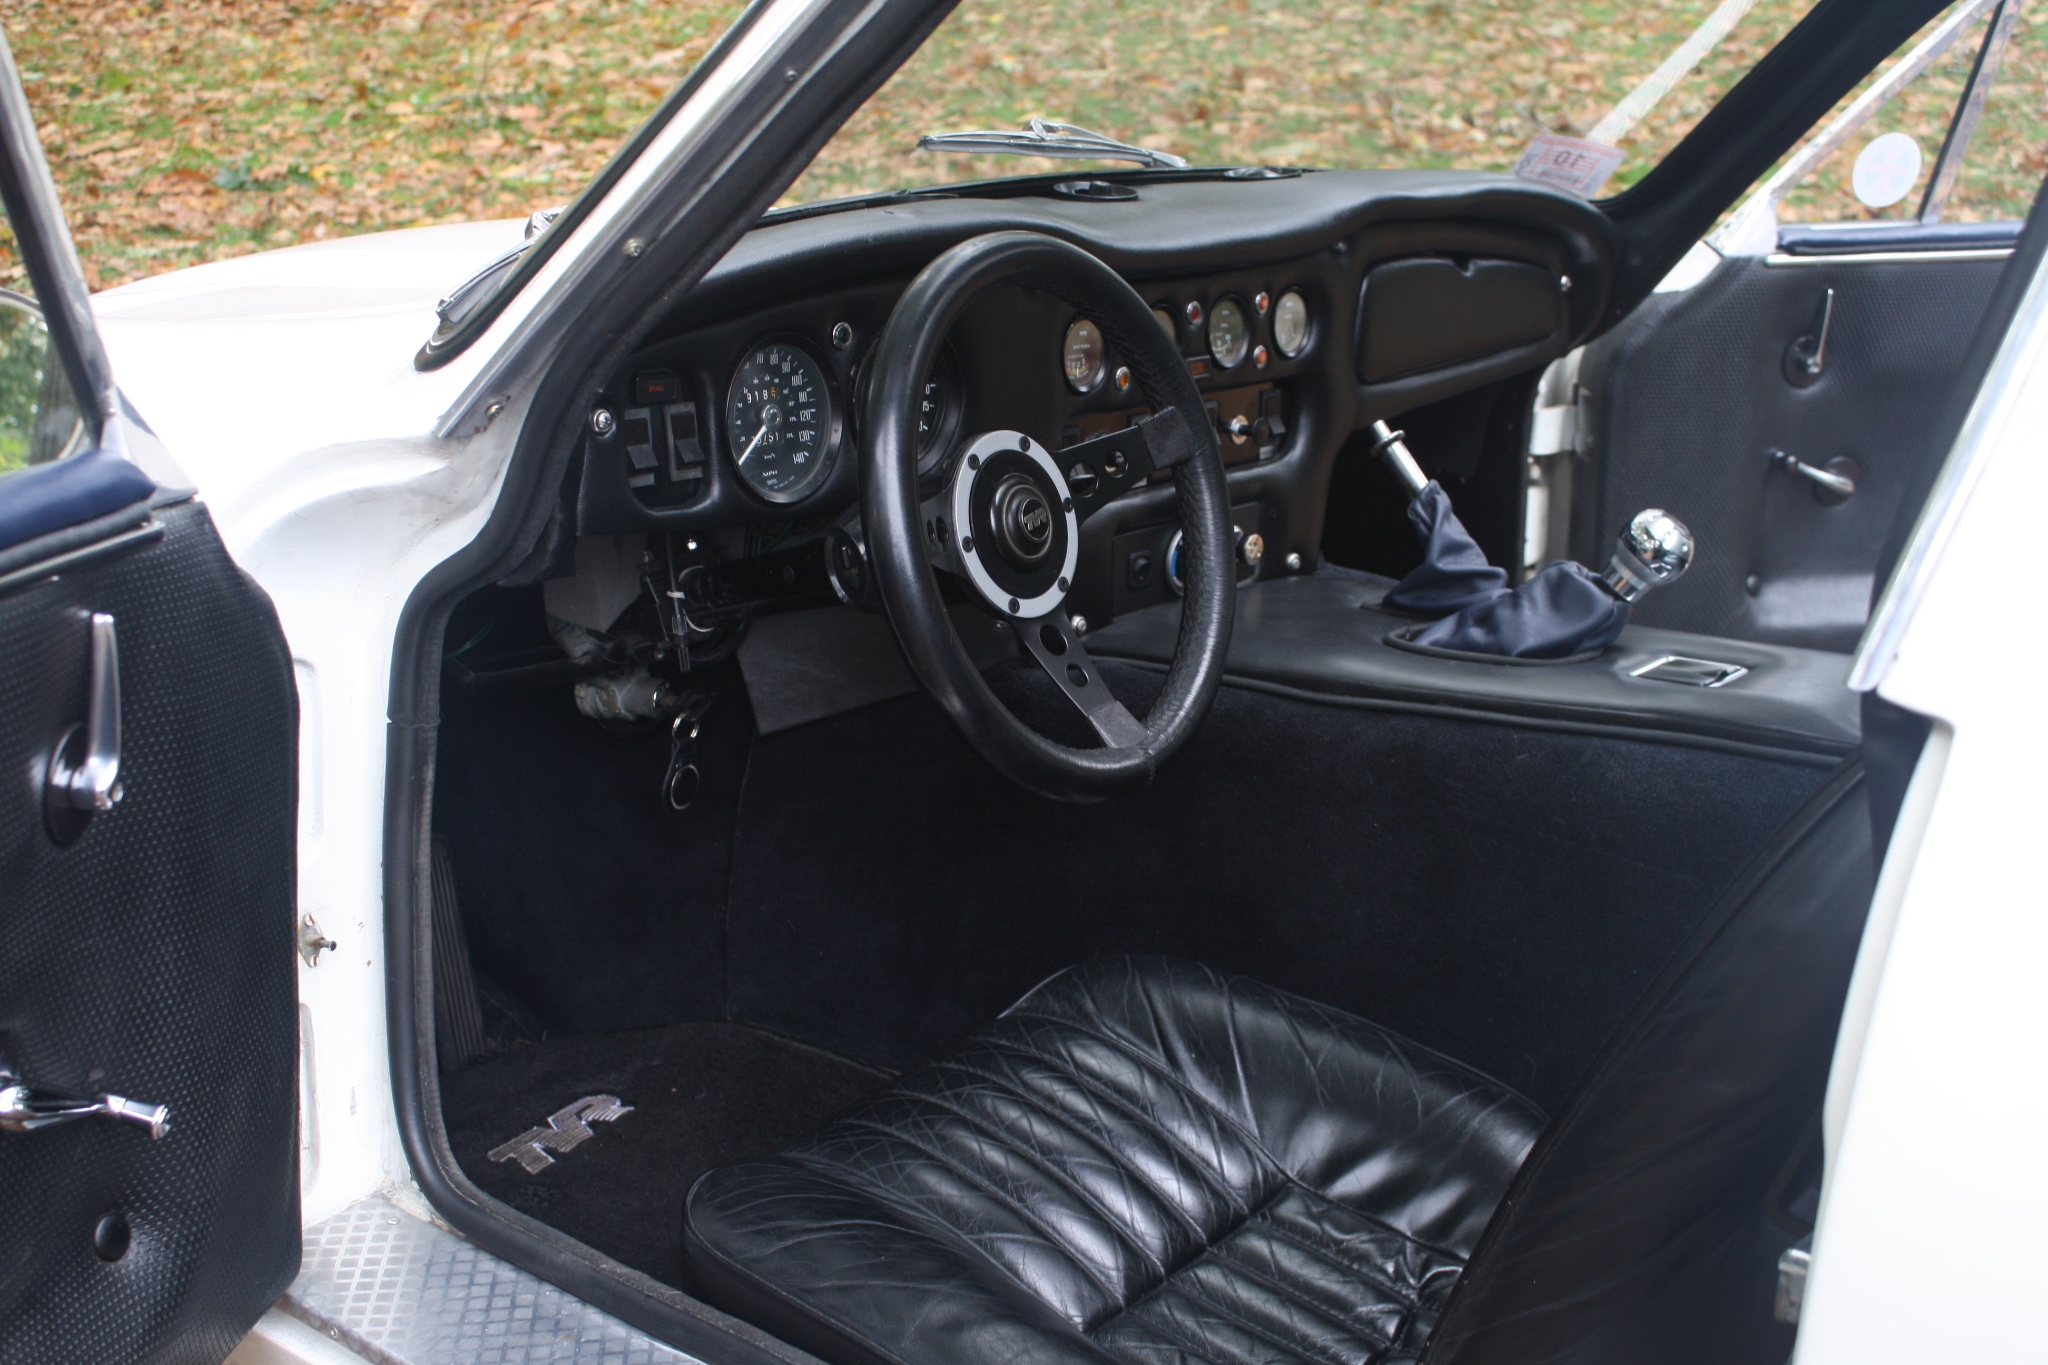 The interior design of the TVR 2500M is one that a sports car enthusiast is going to delight in.